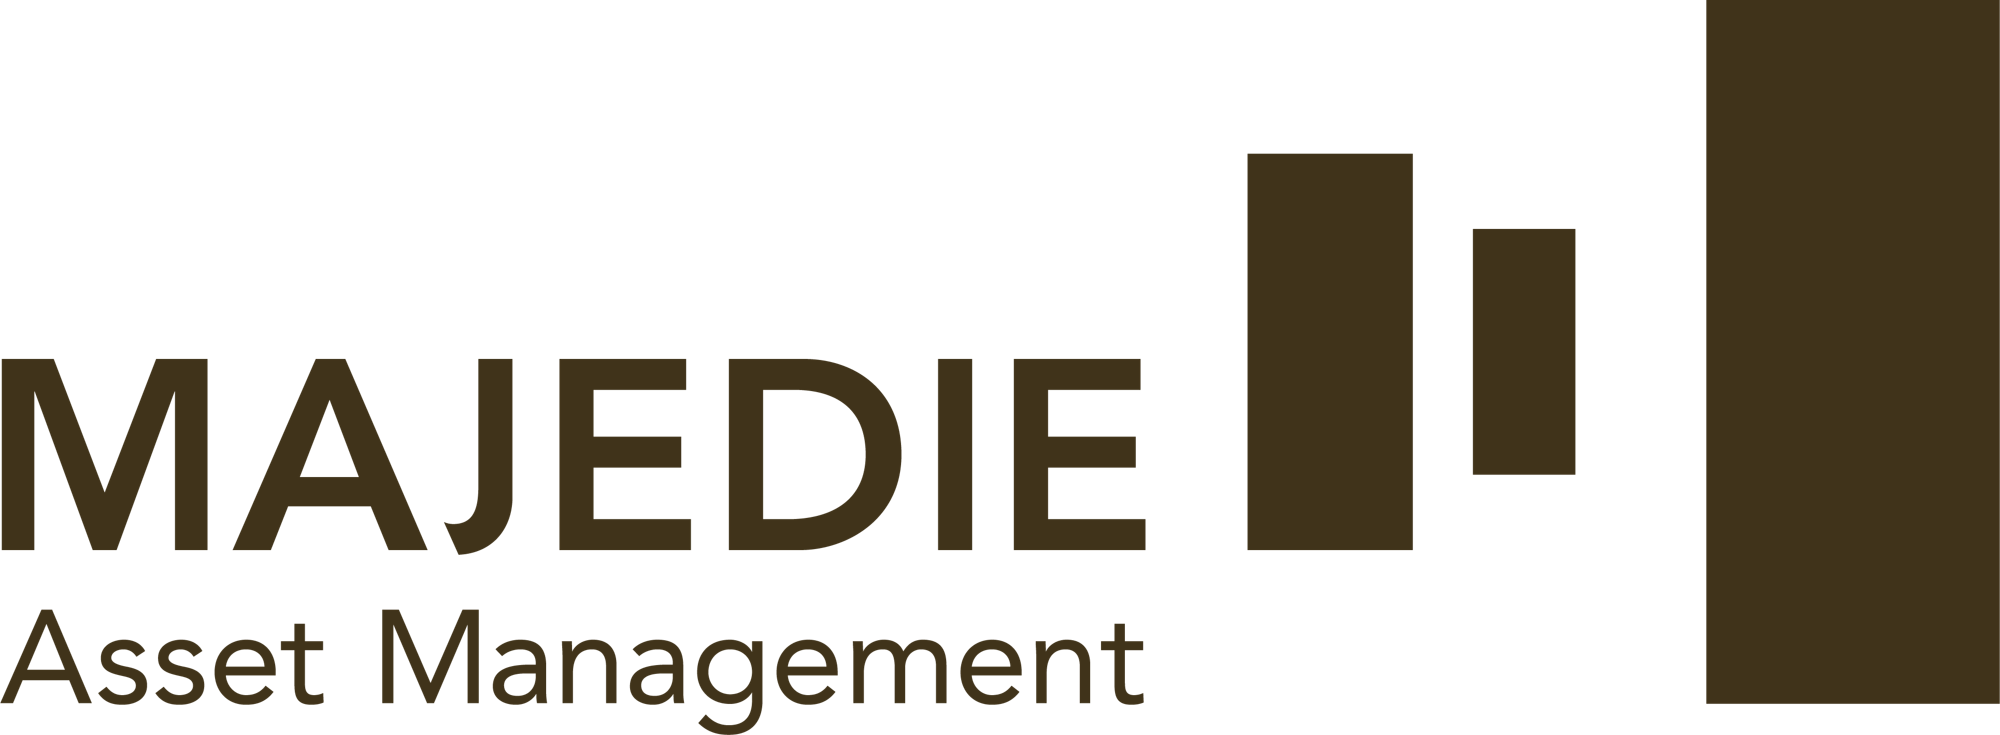 Majedie Asset Management creates new Head of Responsible Capitalism role